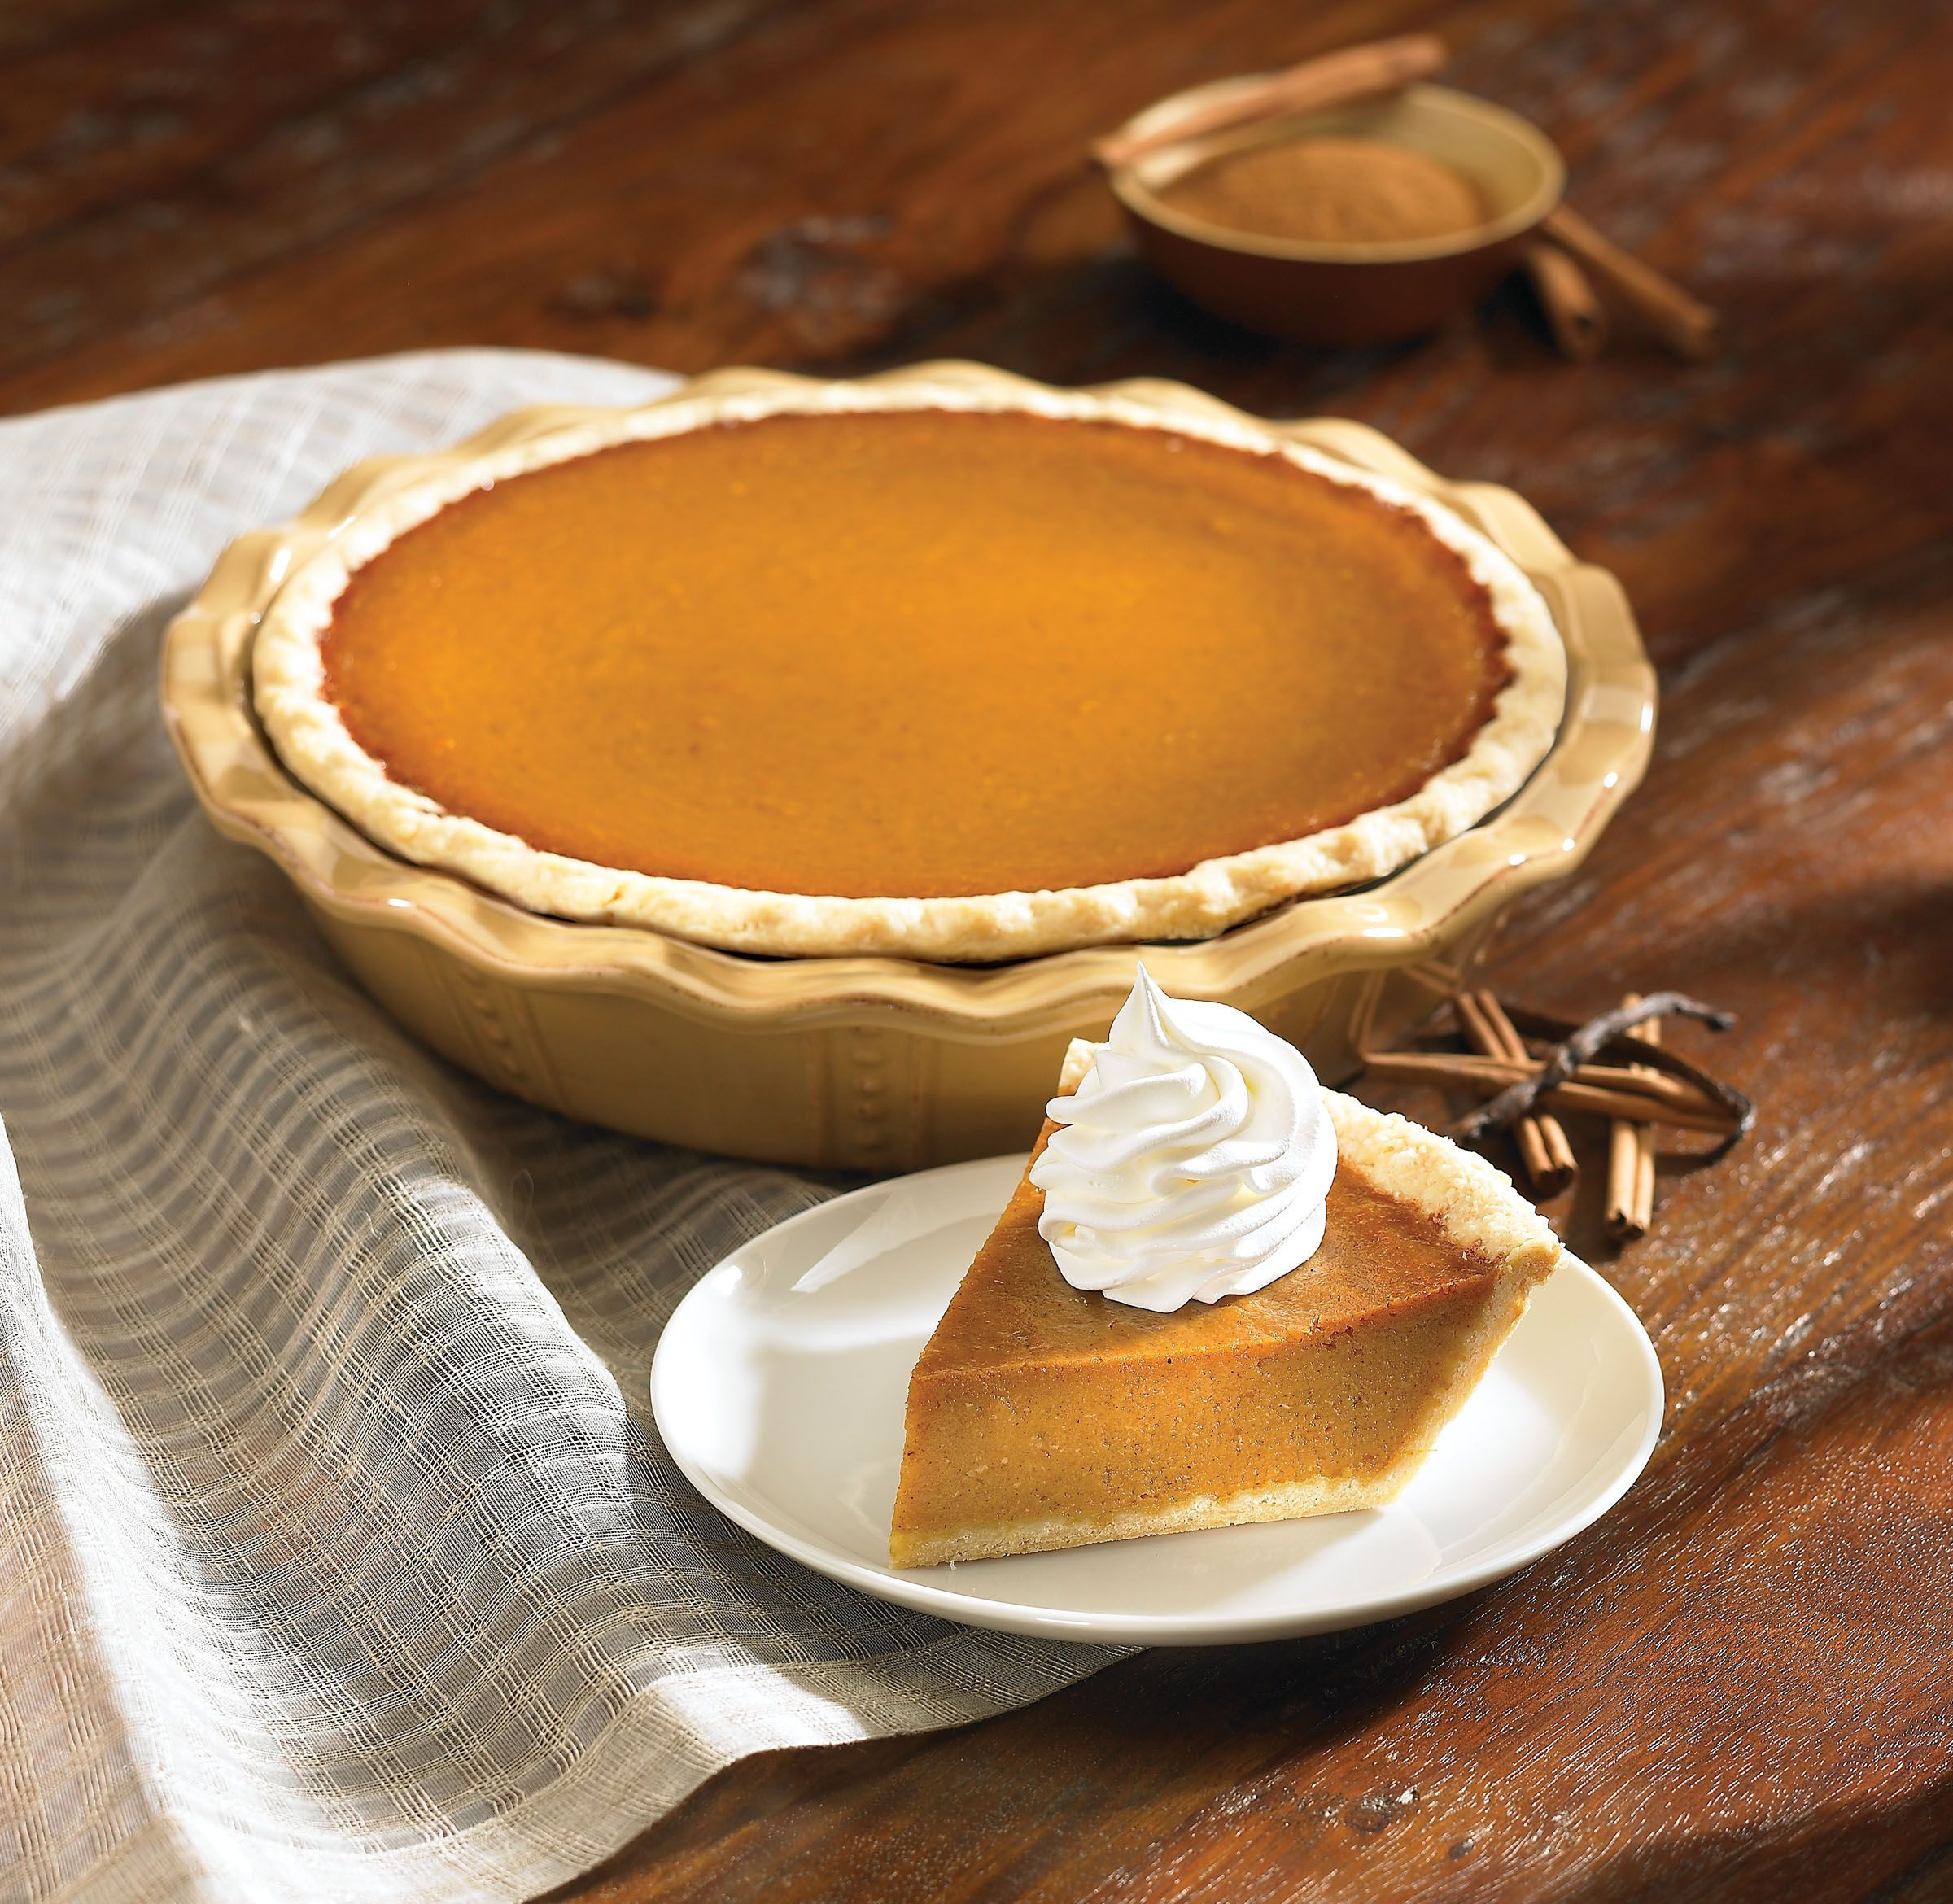 marie callender pies - | Famous restaurants | Pinterest | Pies and ...